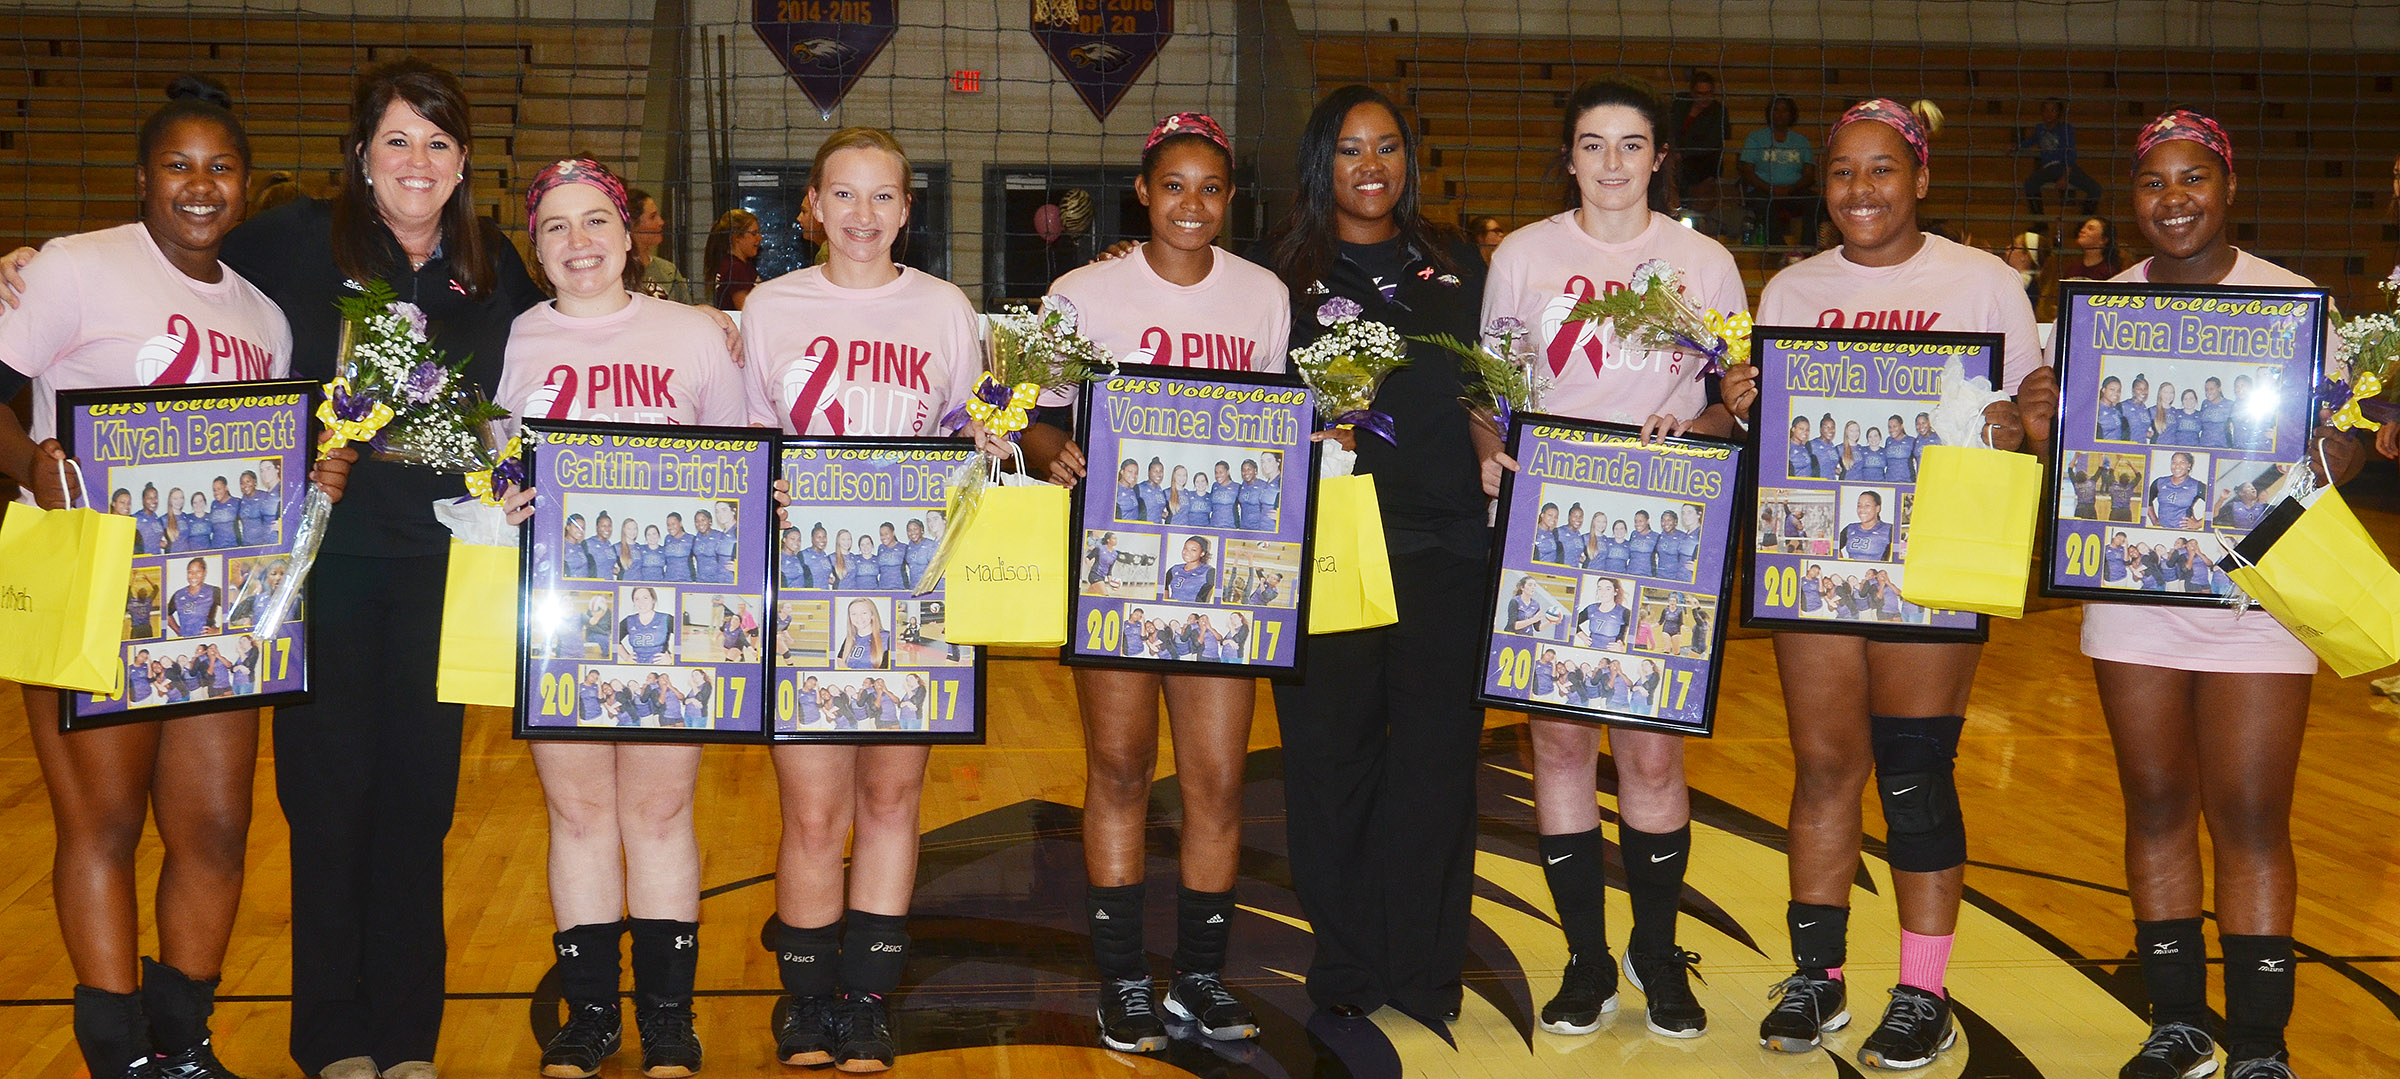 CHS senior volleyball players are honored. From left are Kiyah Barnett, head coach Elisha Rhodes, Caitlin Bright, Madison Dial, Vonnea Smith, assistant coach Shajuana Ditto, Amanda Miles, Kayla Young and Nena Barnett.